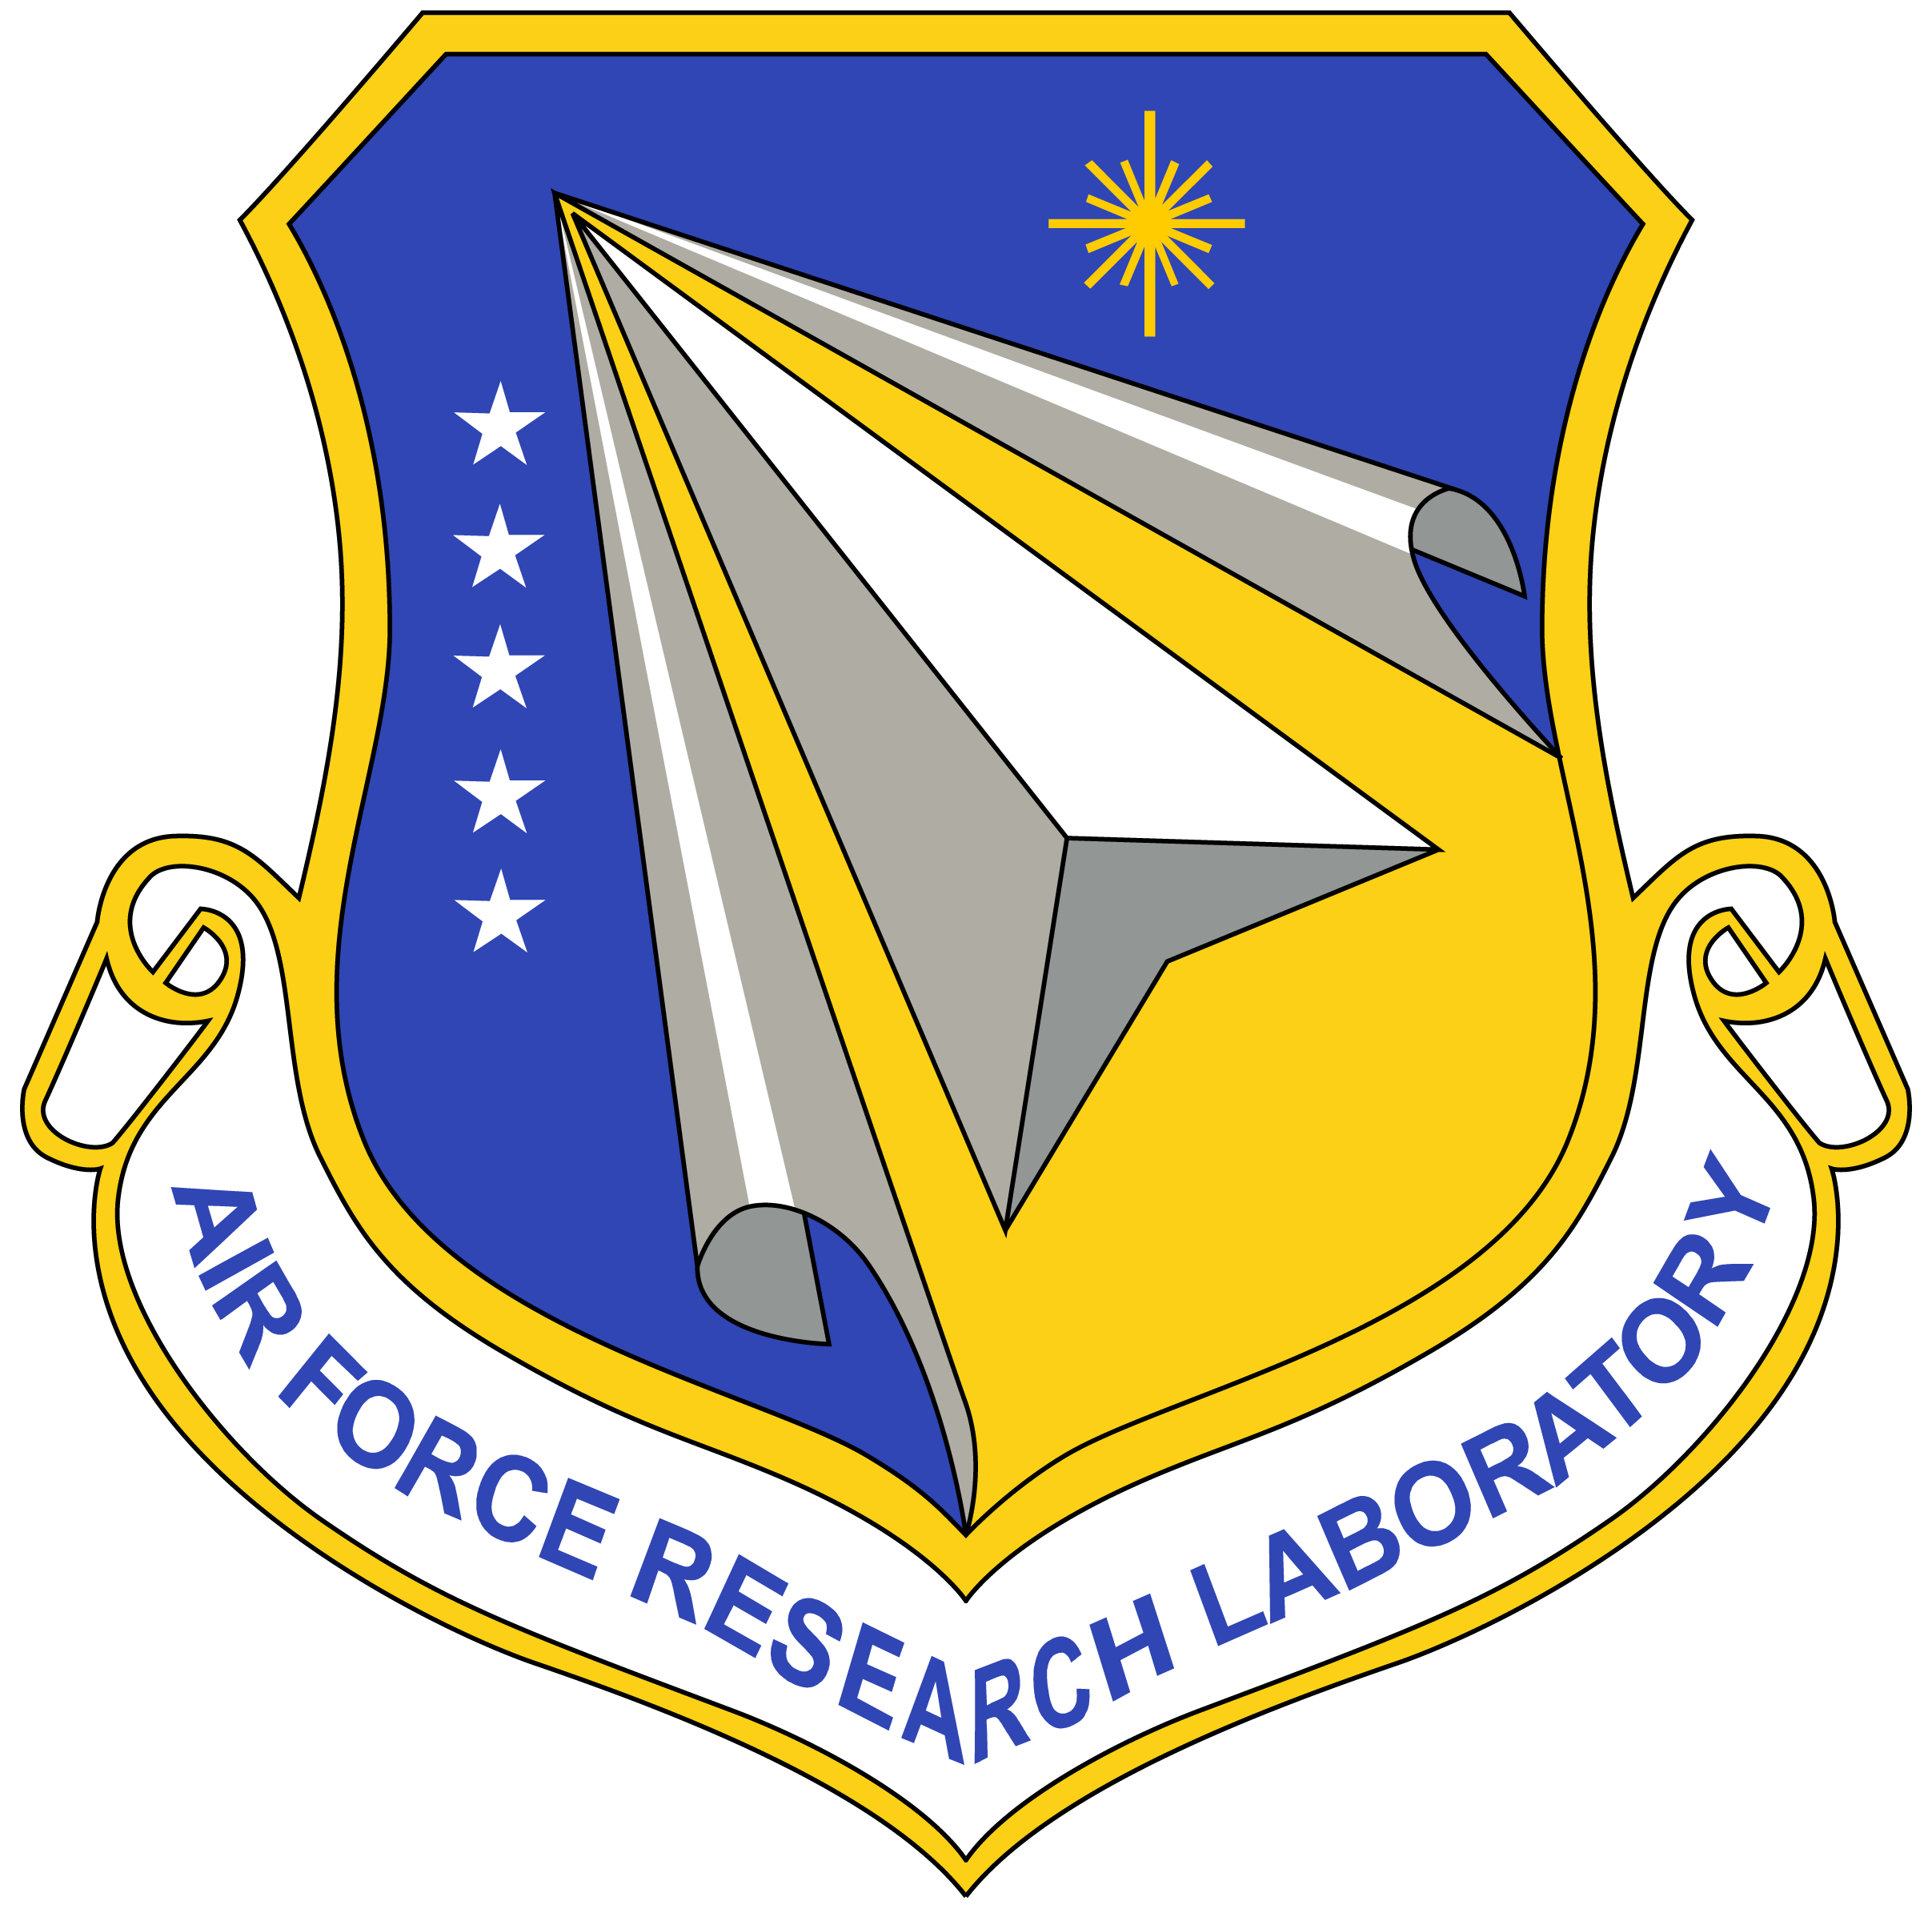 Air Force Research Labratory